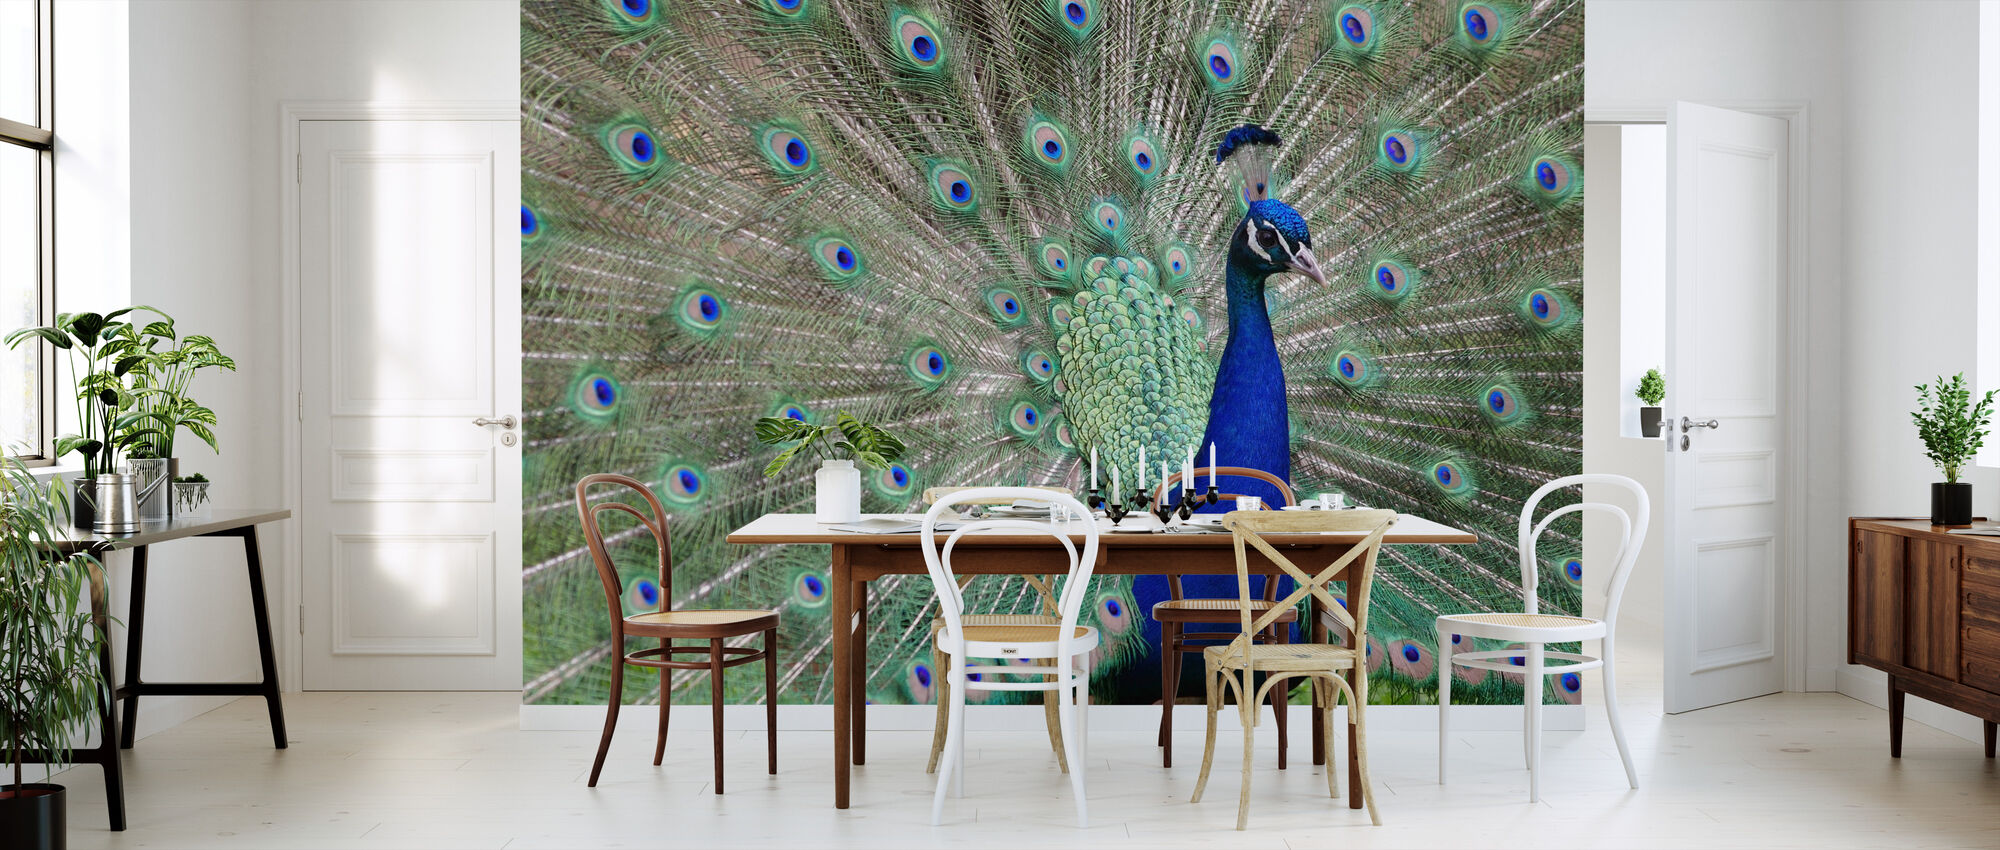 Peacock Showing off - Wallpaper - Kitchen